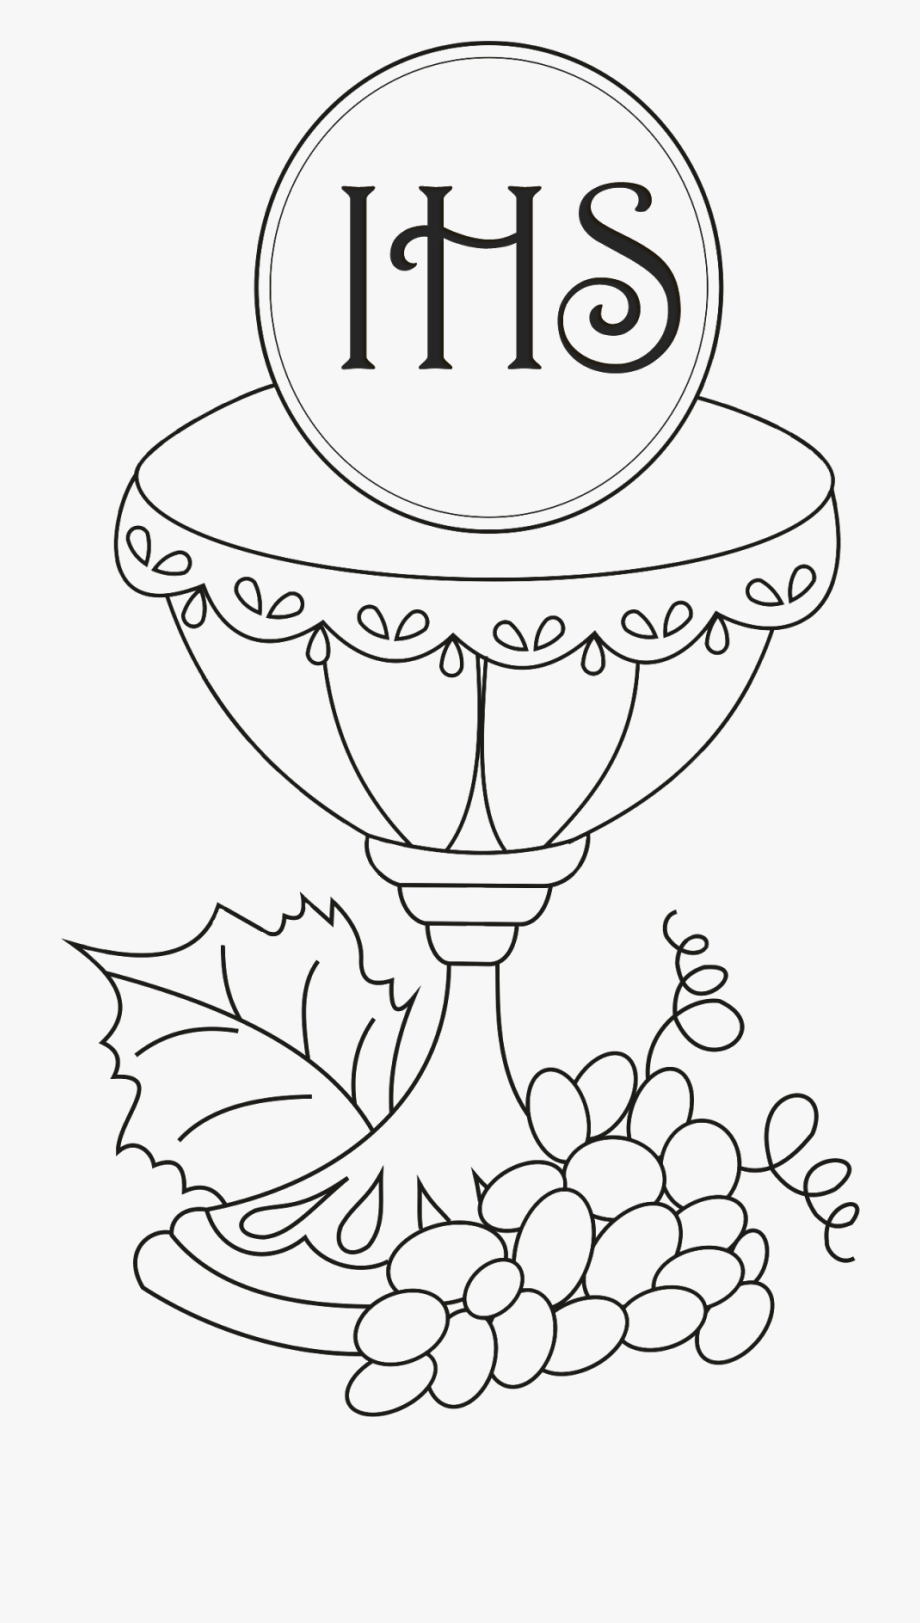 Free Holy Communion Clipart, Download Free Clip Art, Free